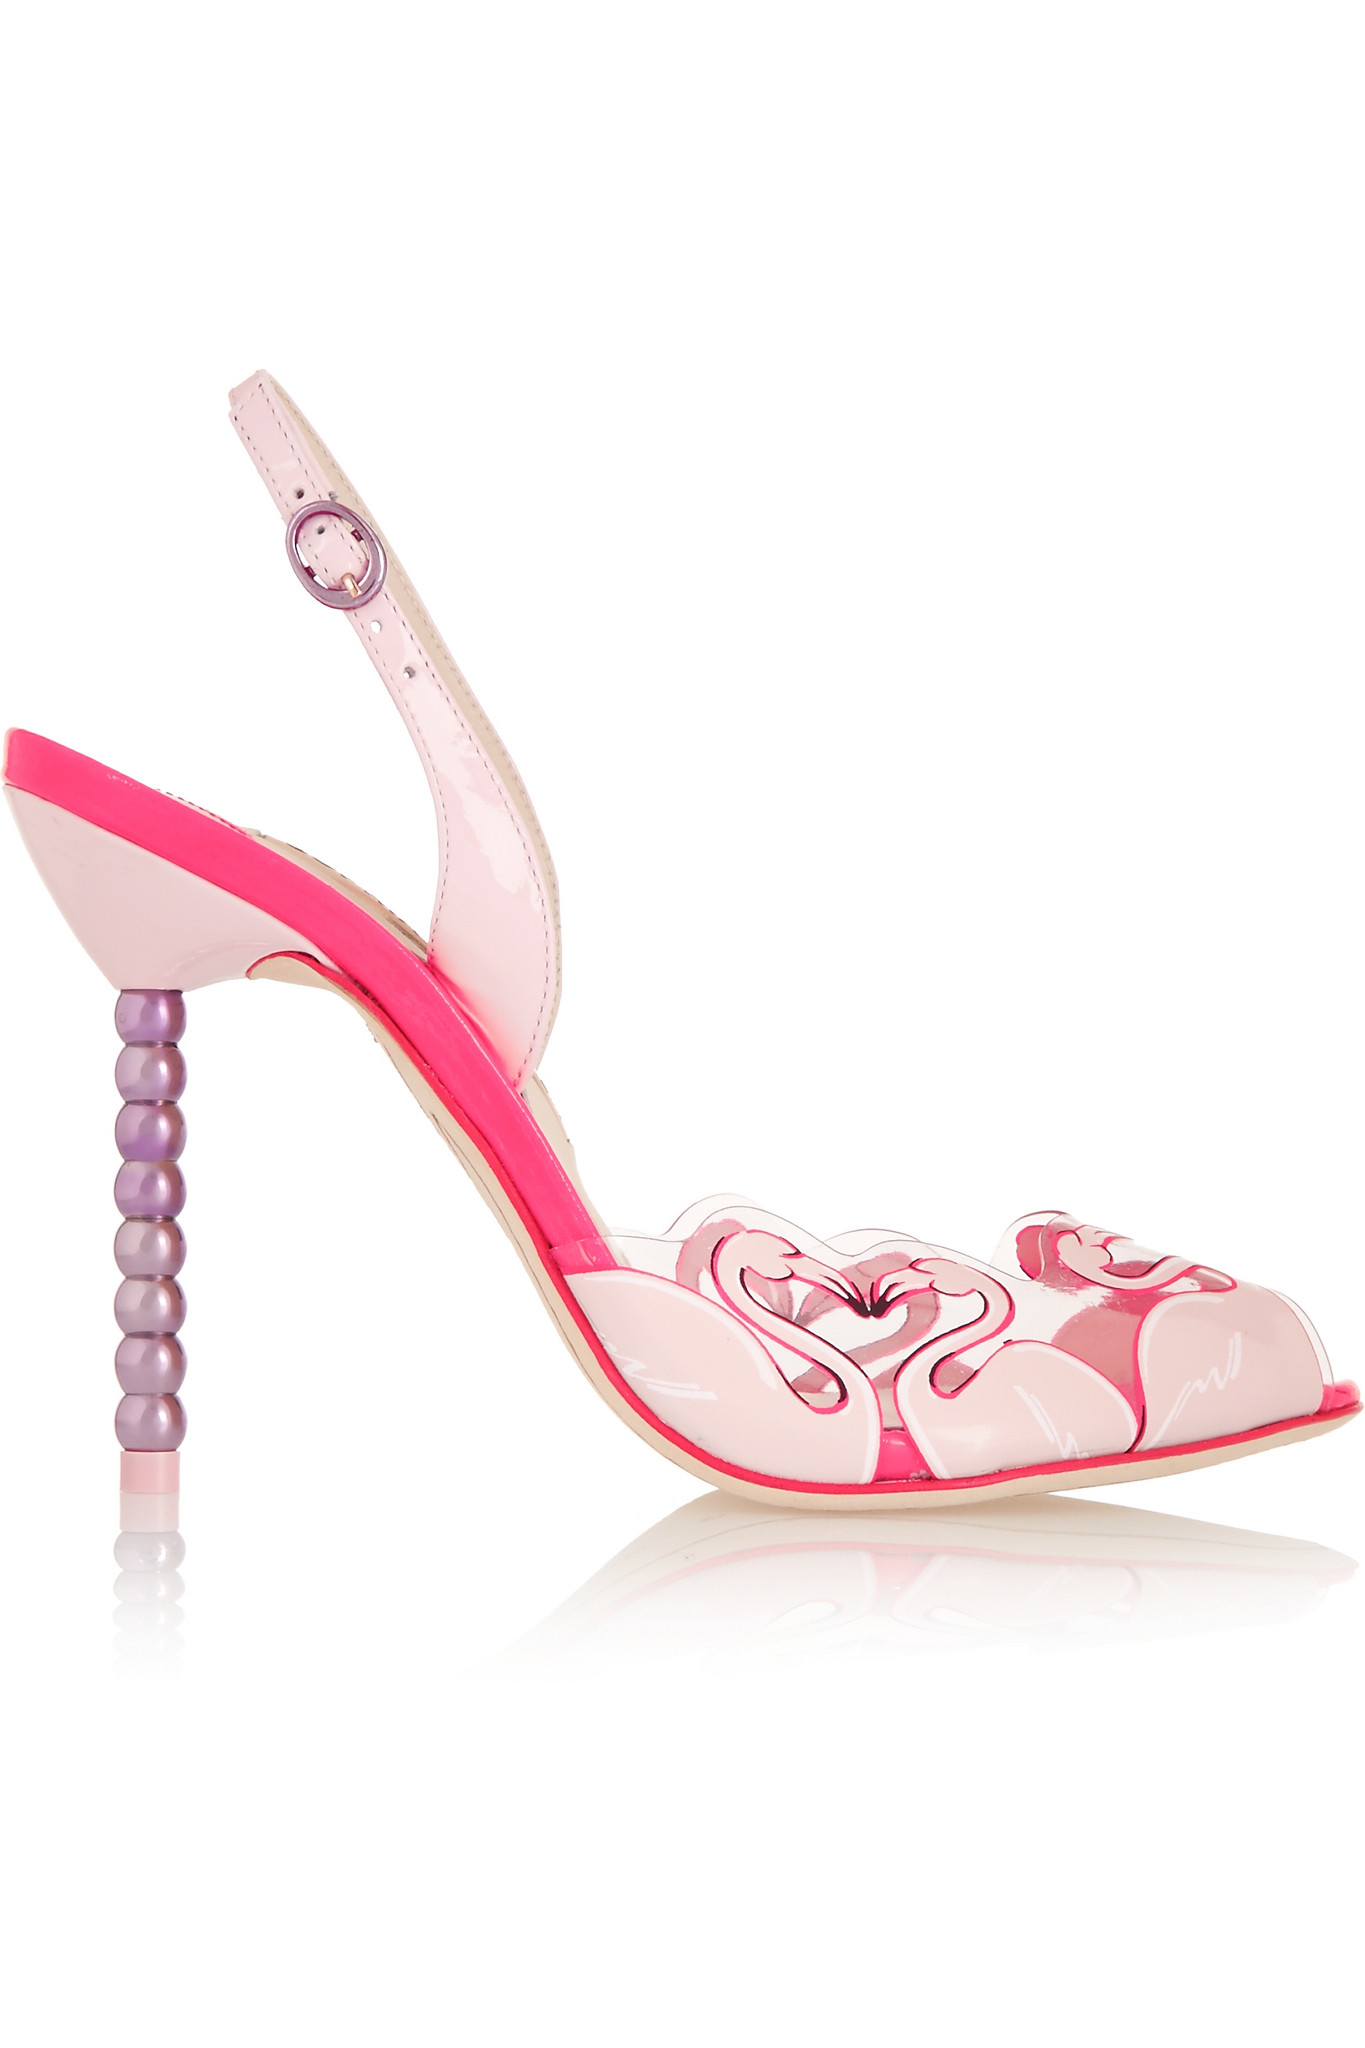 Sophia Webster Flamingo Pvc And Patent Leather Sandals in ...